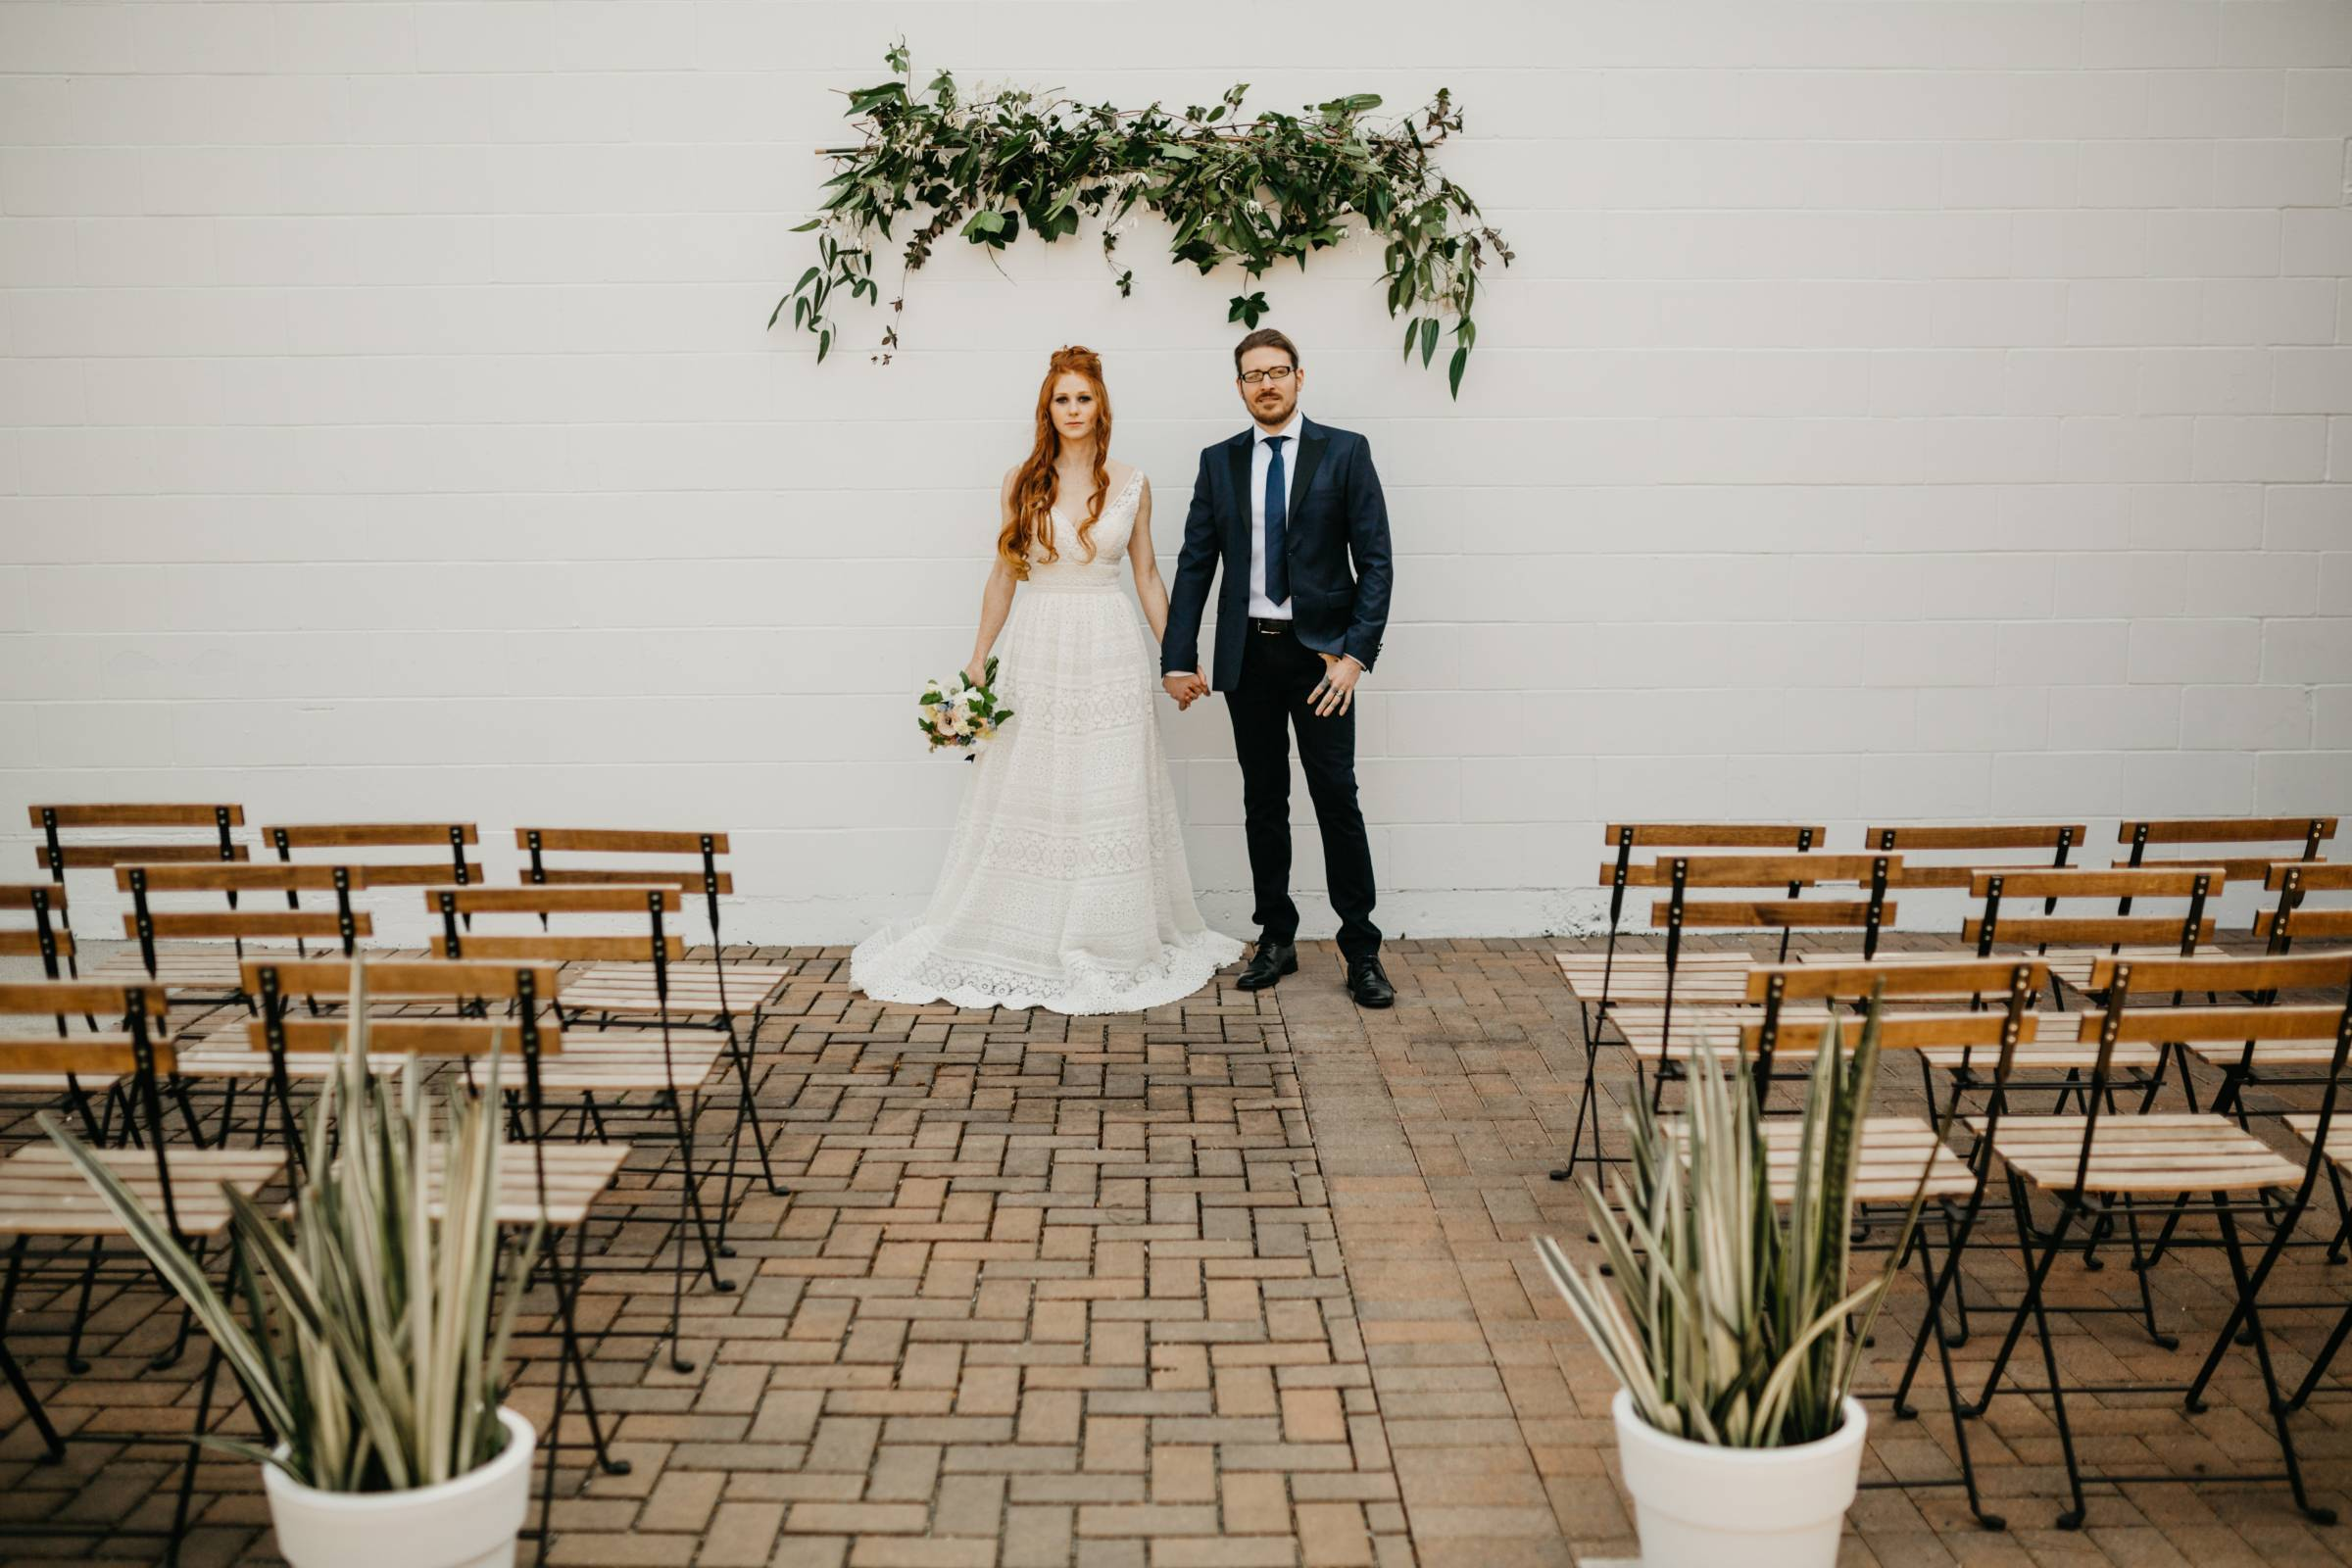 styled wedding shoot | urban minimalistic wedding designed by Emma McCormick - Creative Planning + P